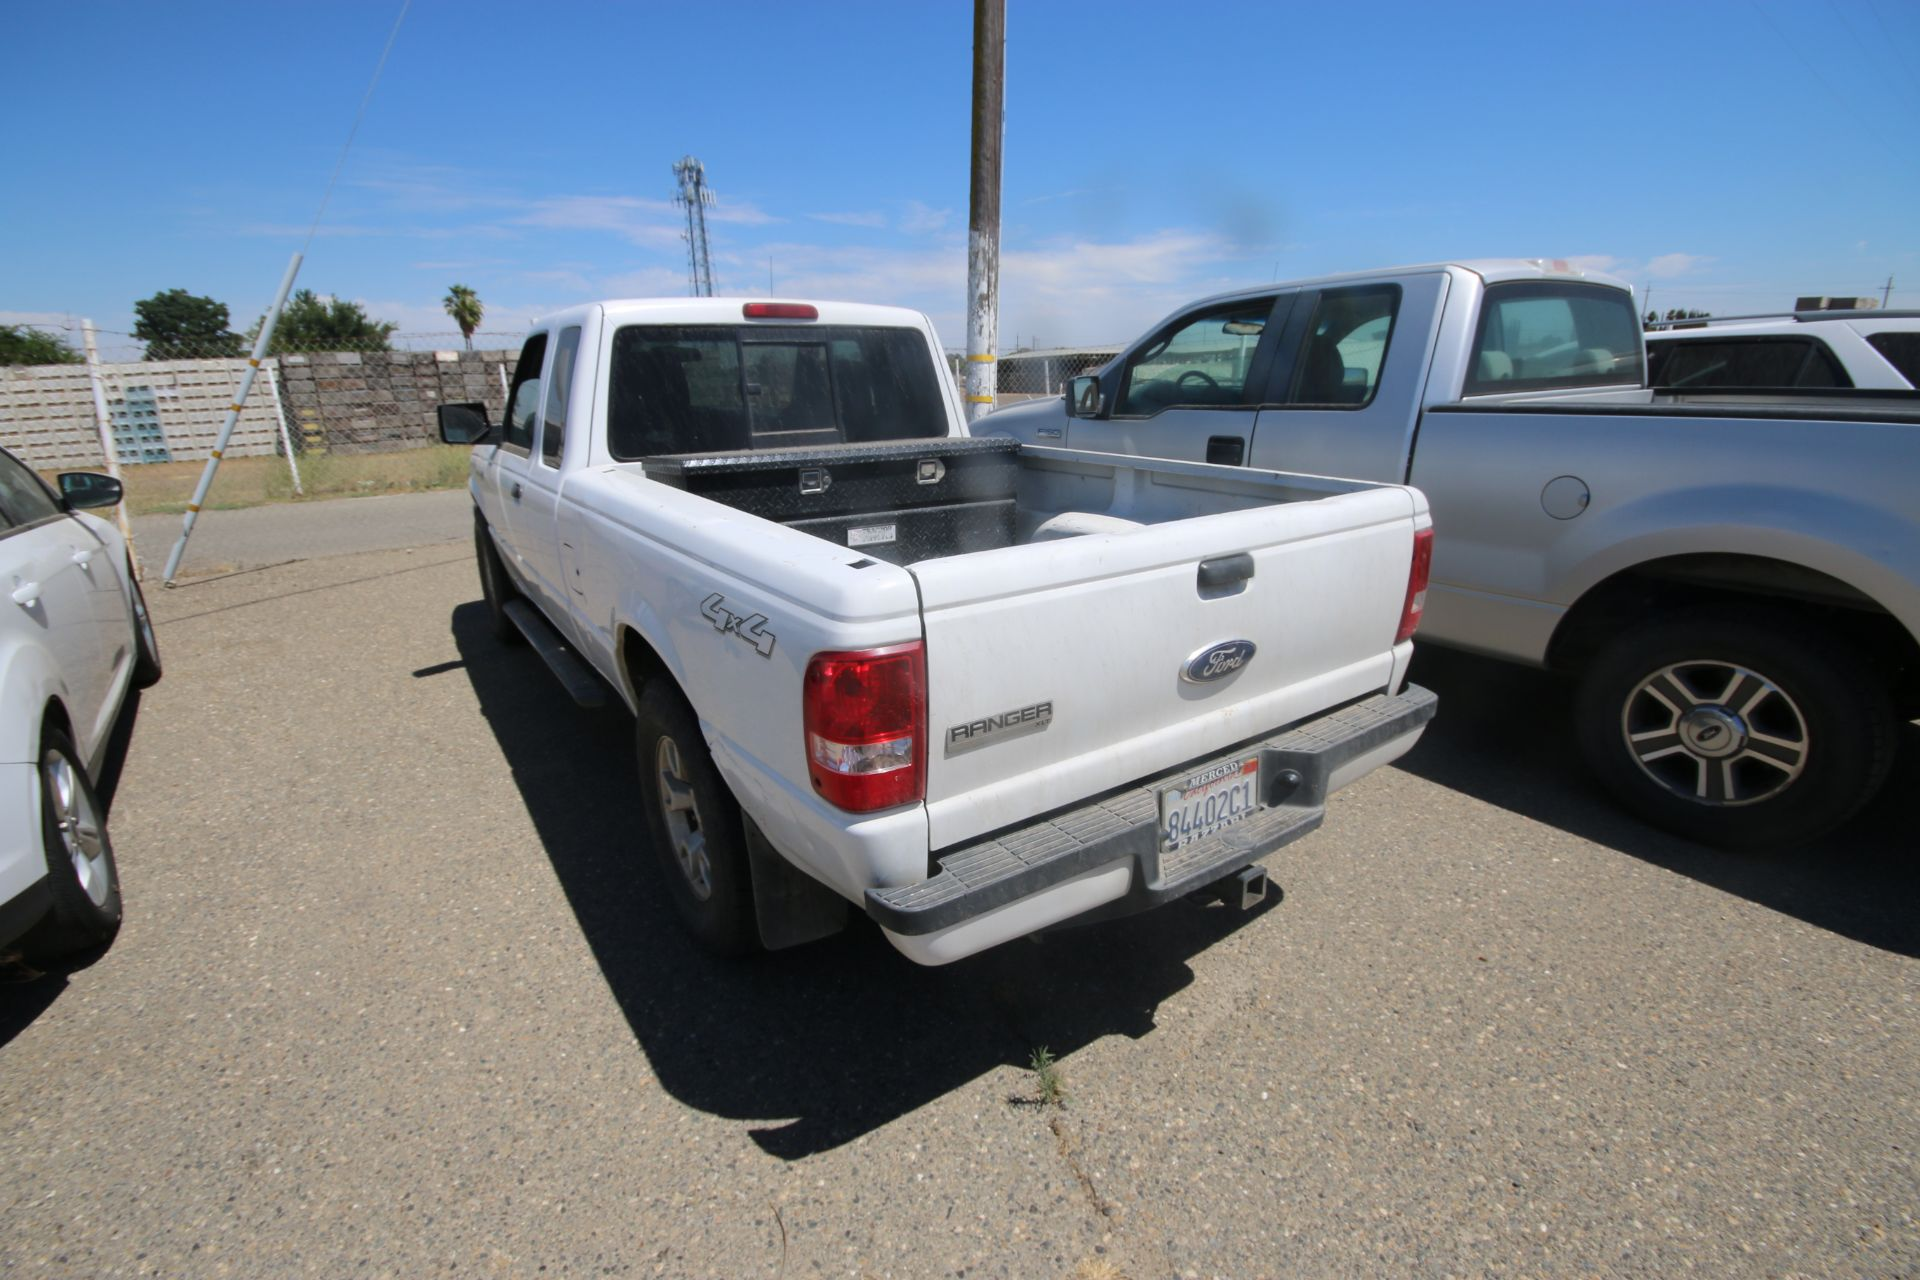 2011 White Ford Ranger Pick Up Truck, VIN #: 1FTLR4FE8BPA37482, with 160,443 Miles, Started Up as of - Image 7 of 24